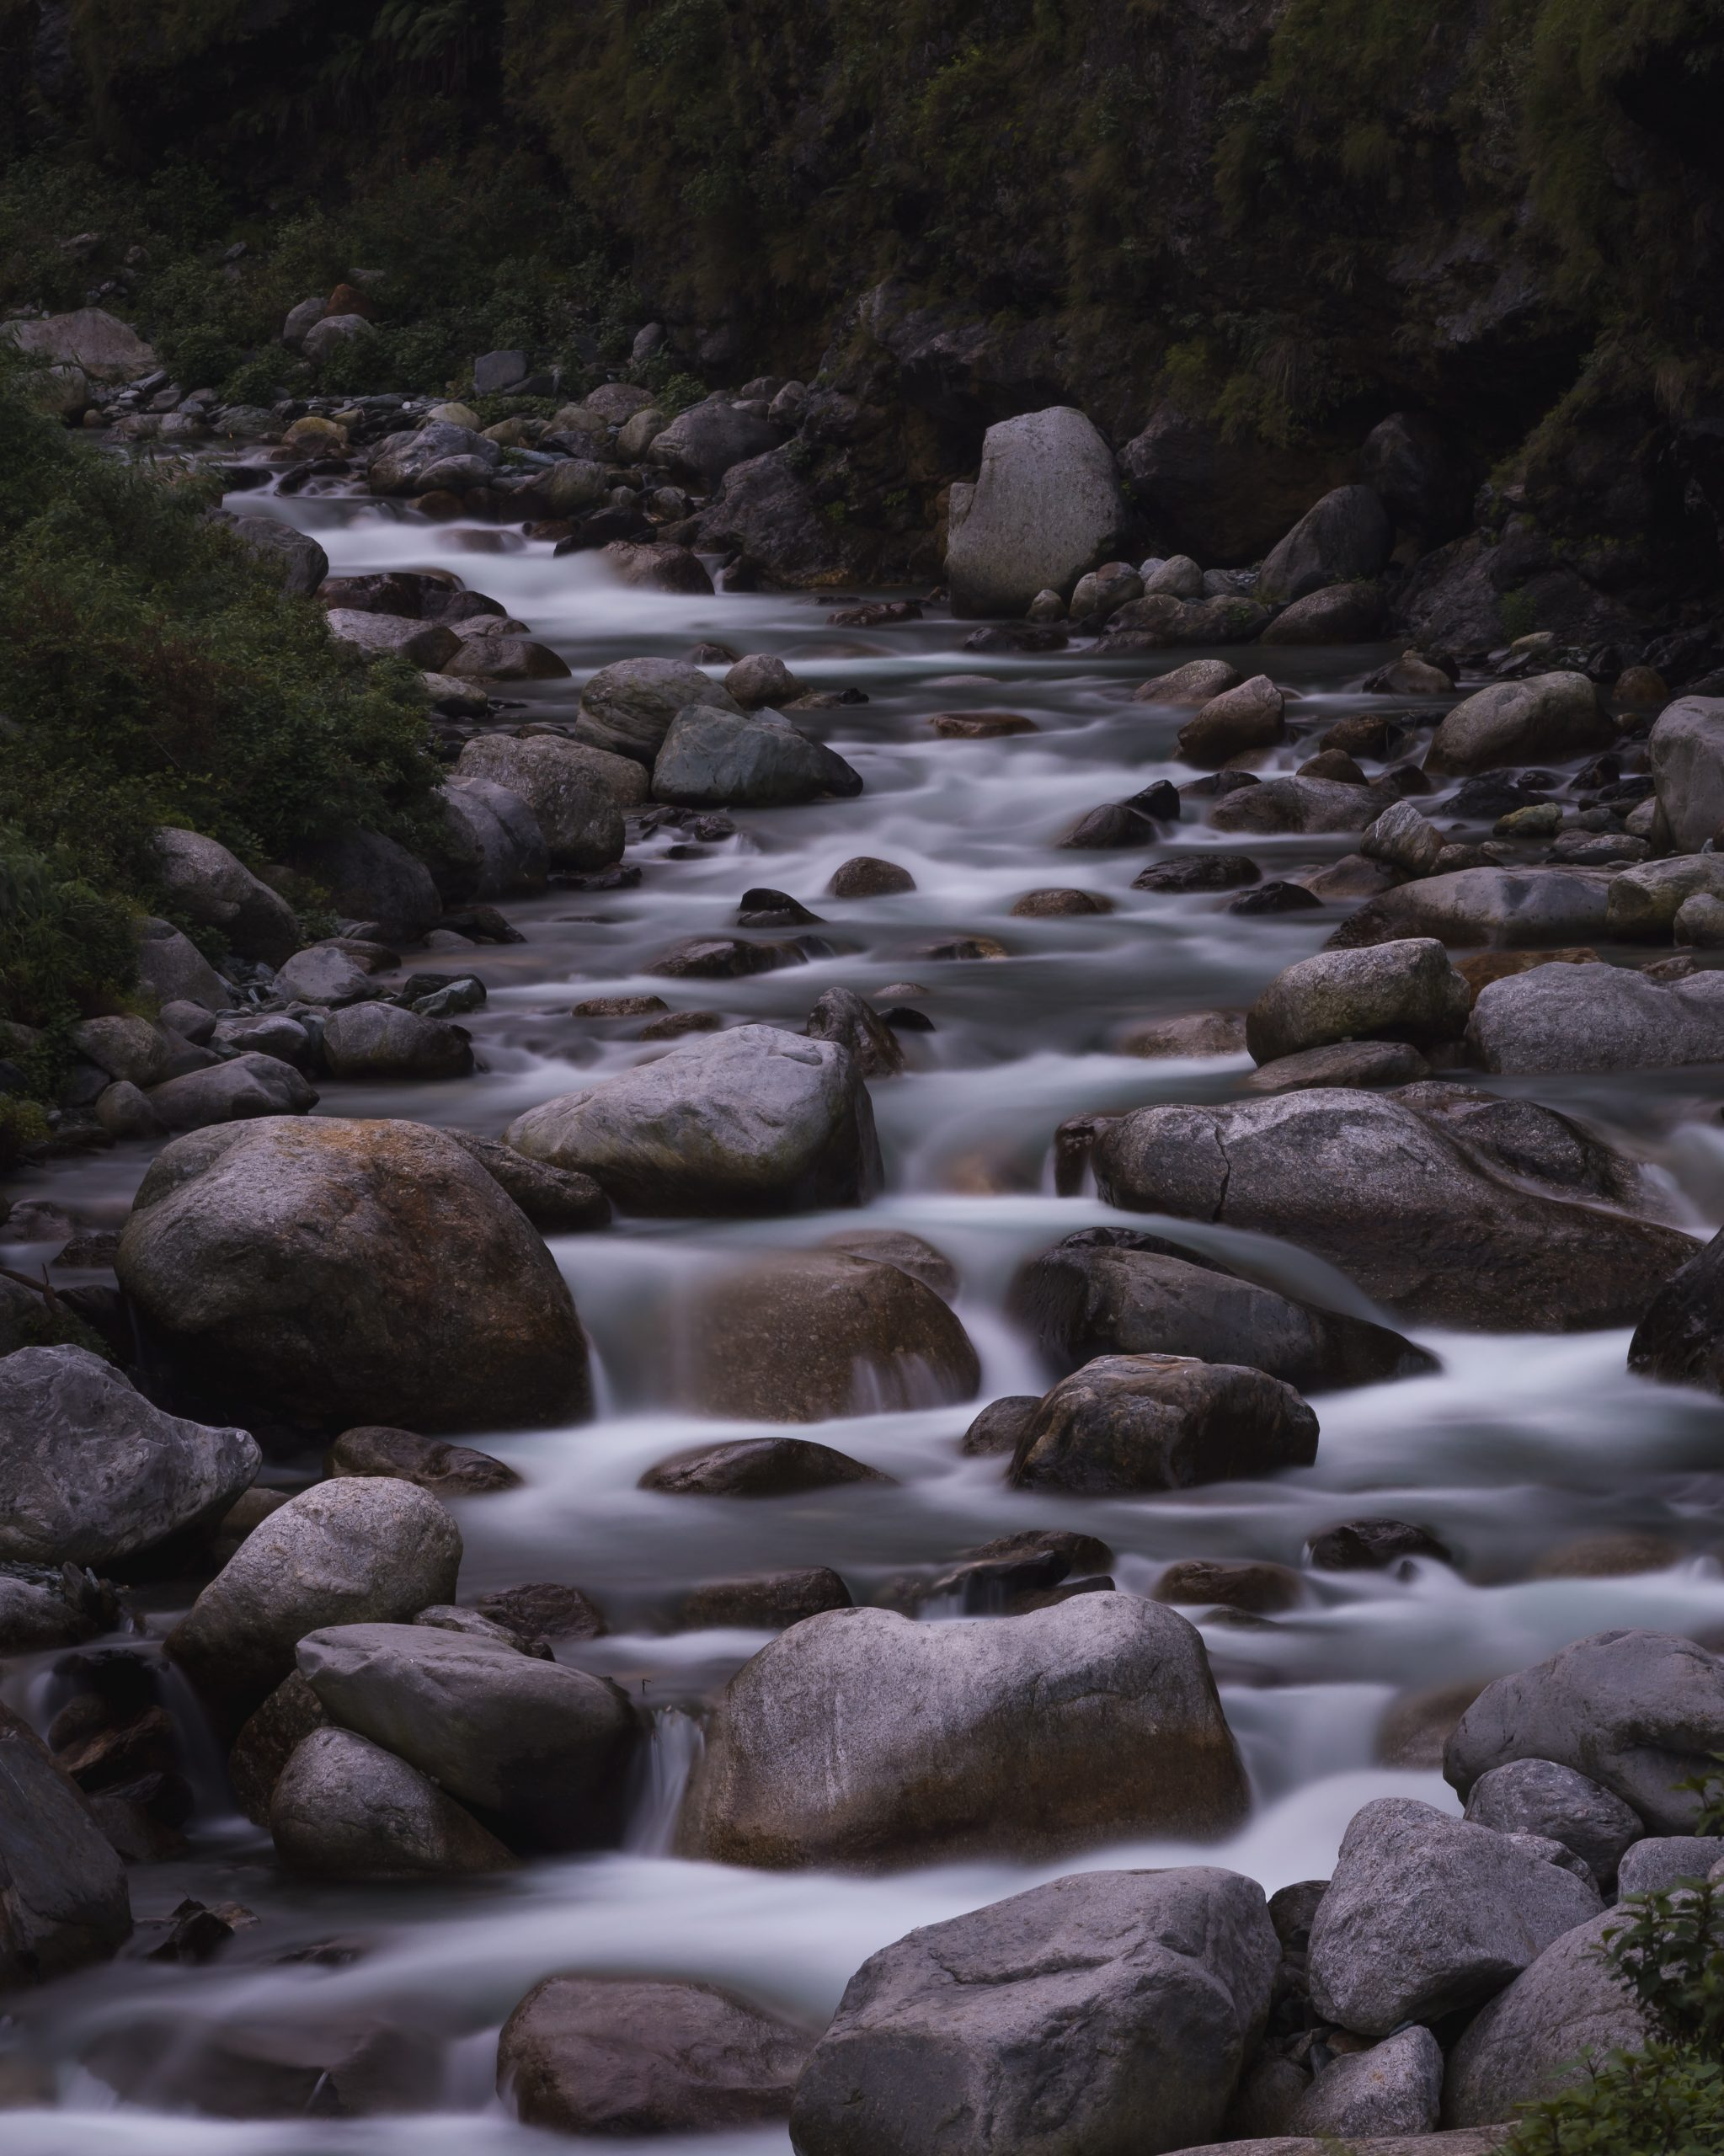 A river flowing through stones